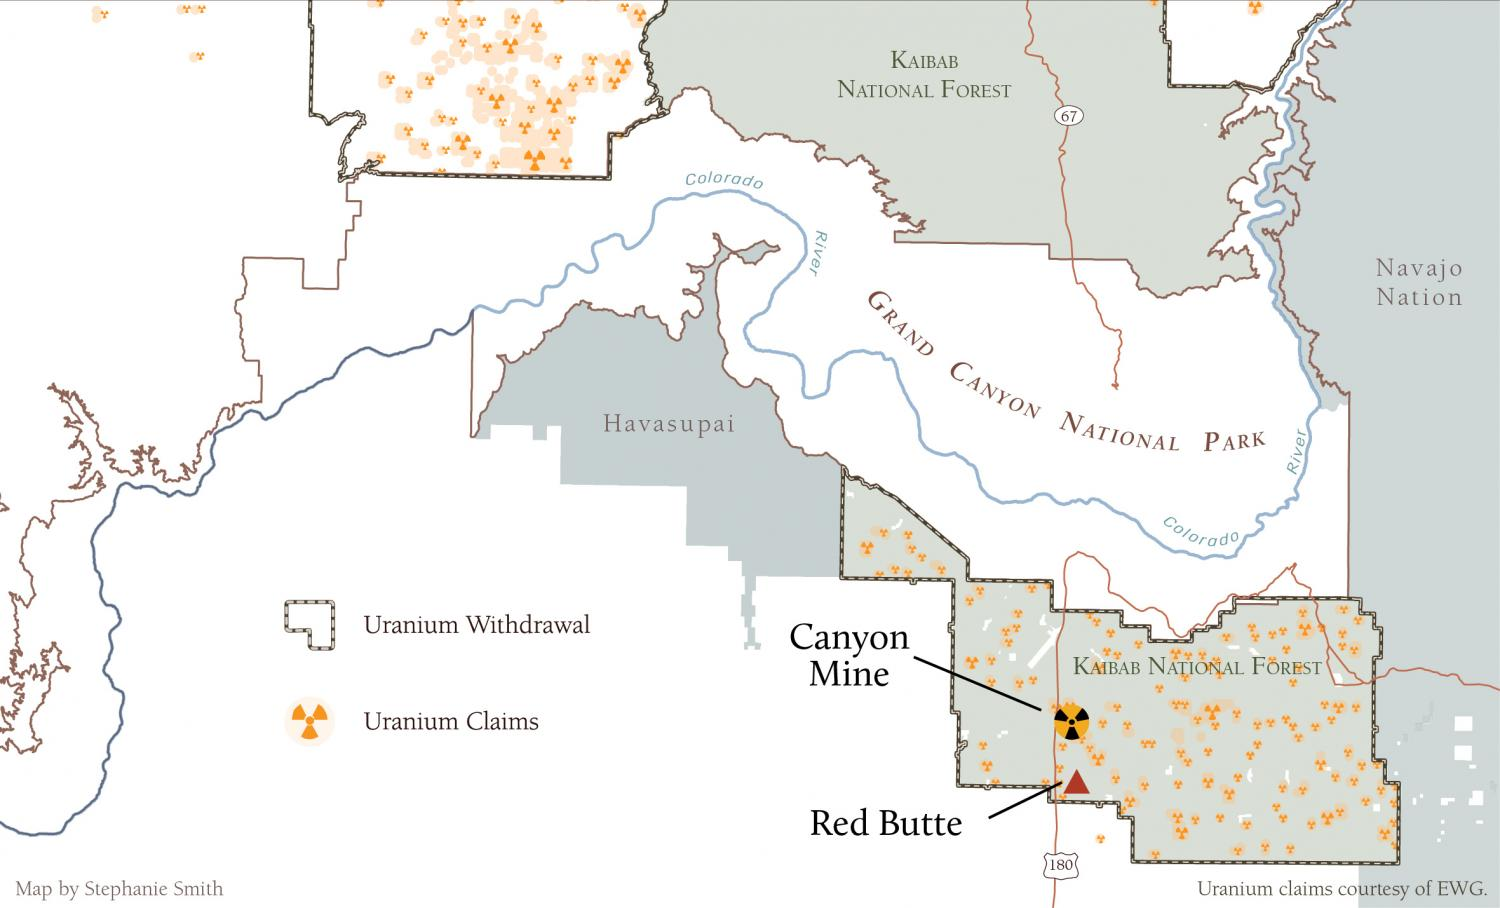 Map of Red Butte surrounded by uranium claims.